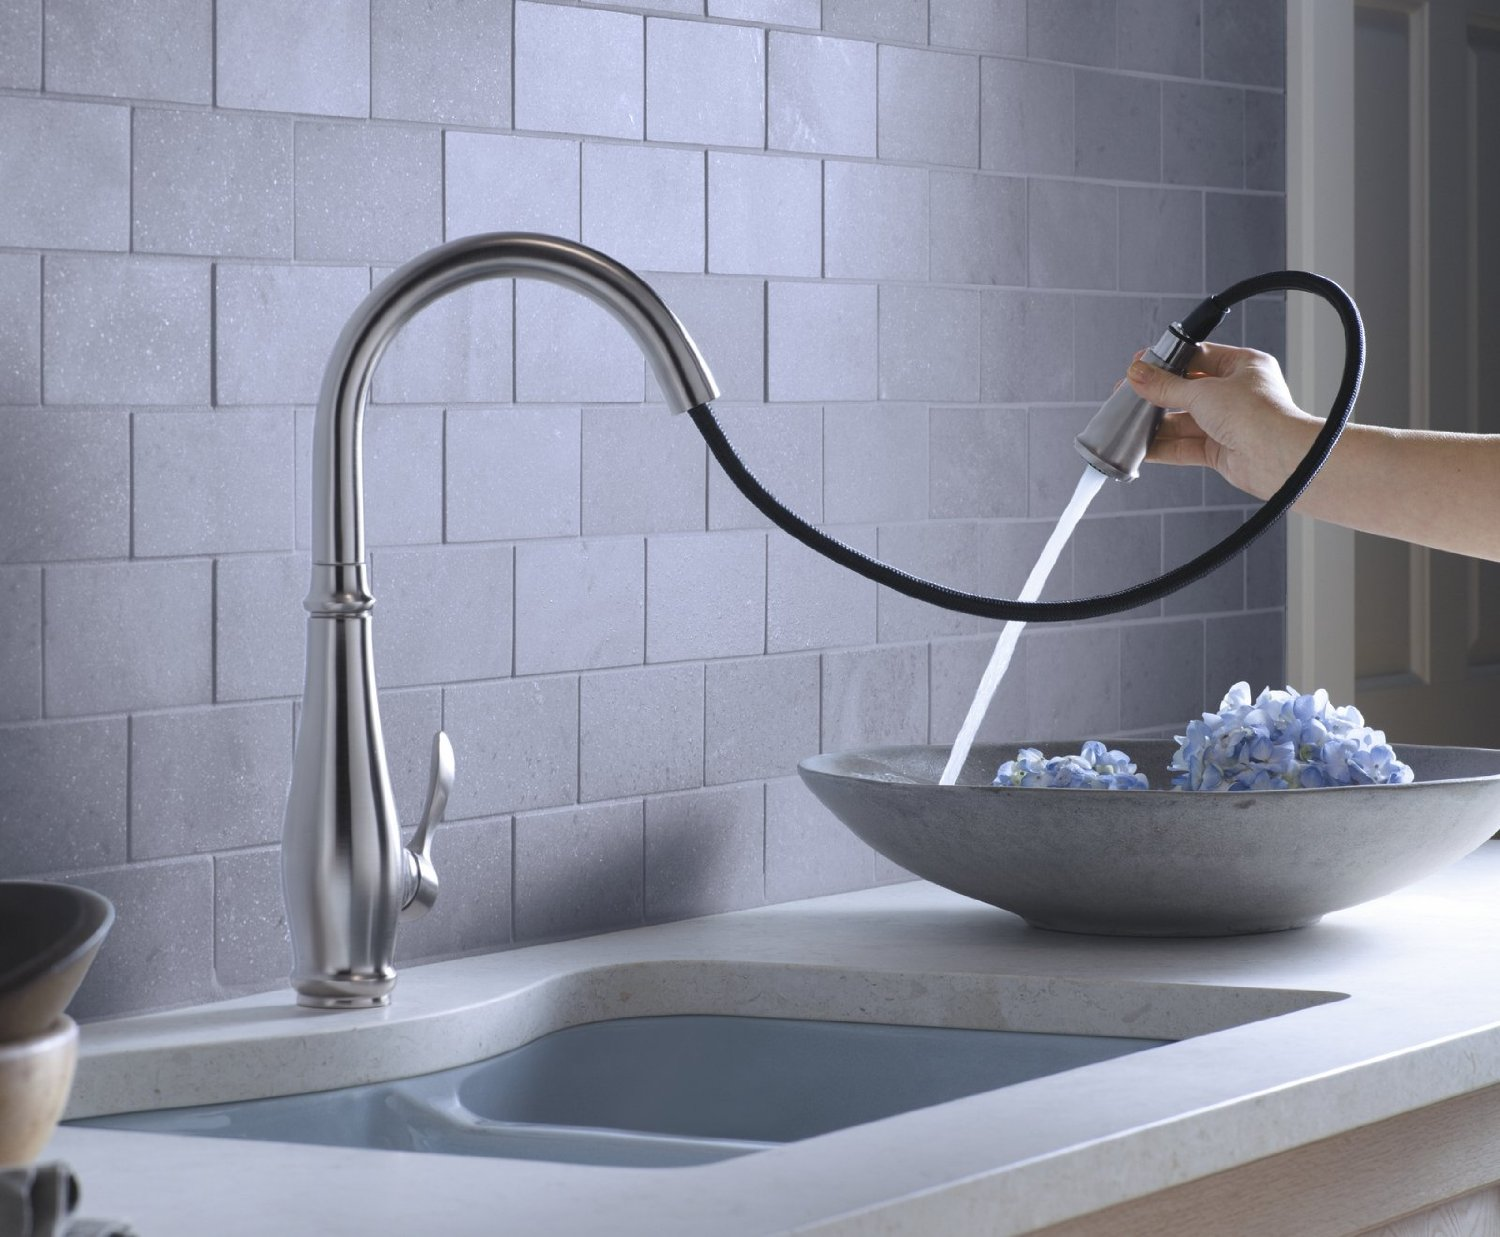 Best kitchen faucets 2013 kitchen faucets hub for Best faucet for kitchen sink